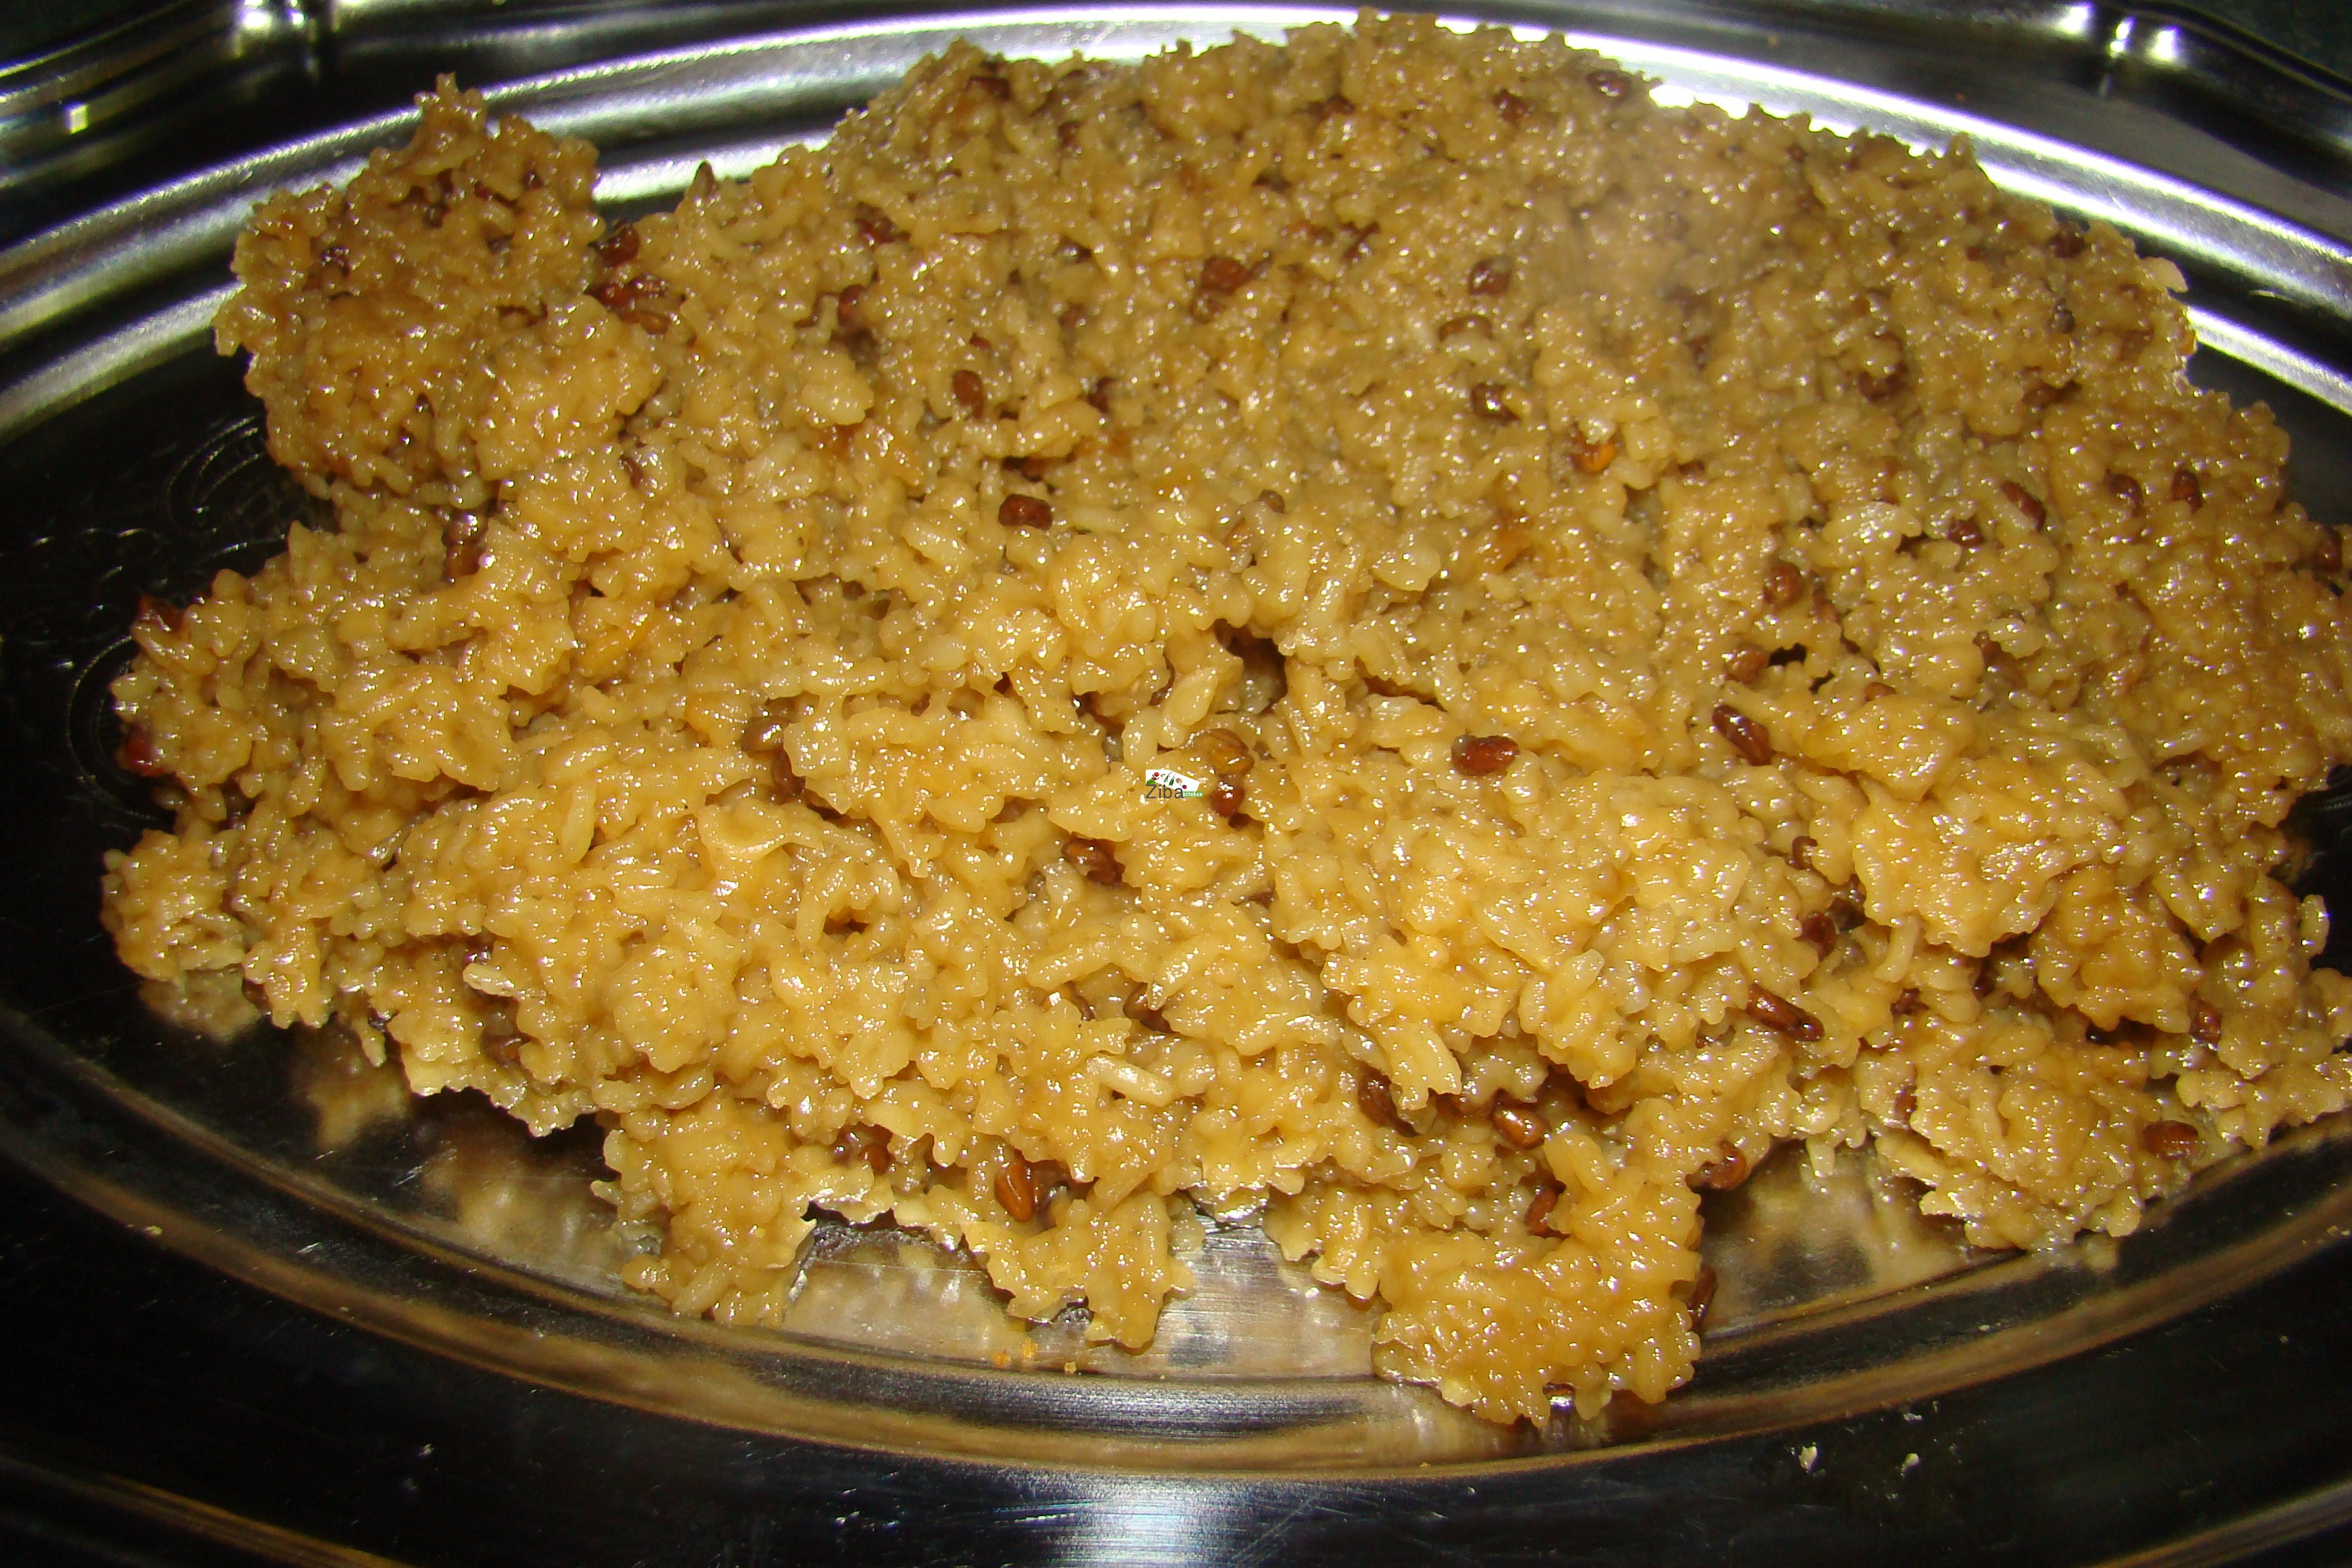 Kecher Ulba (rice with fenugreek) Recipe